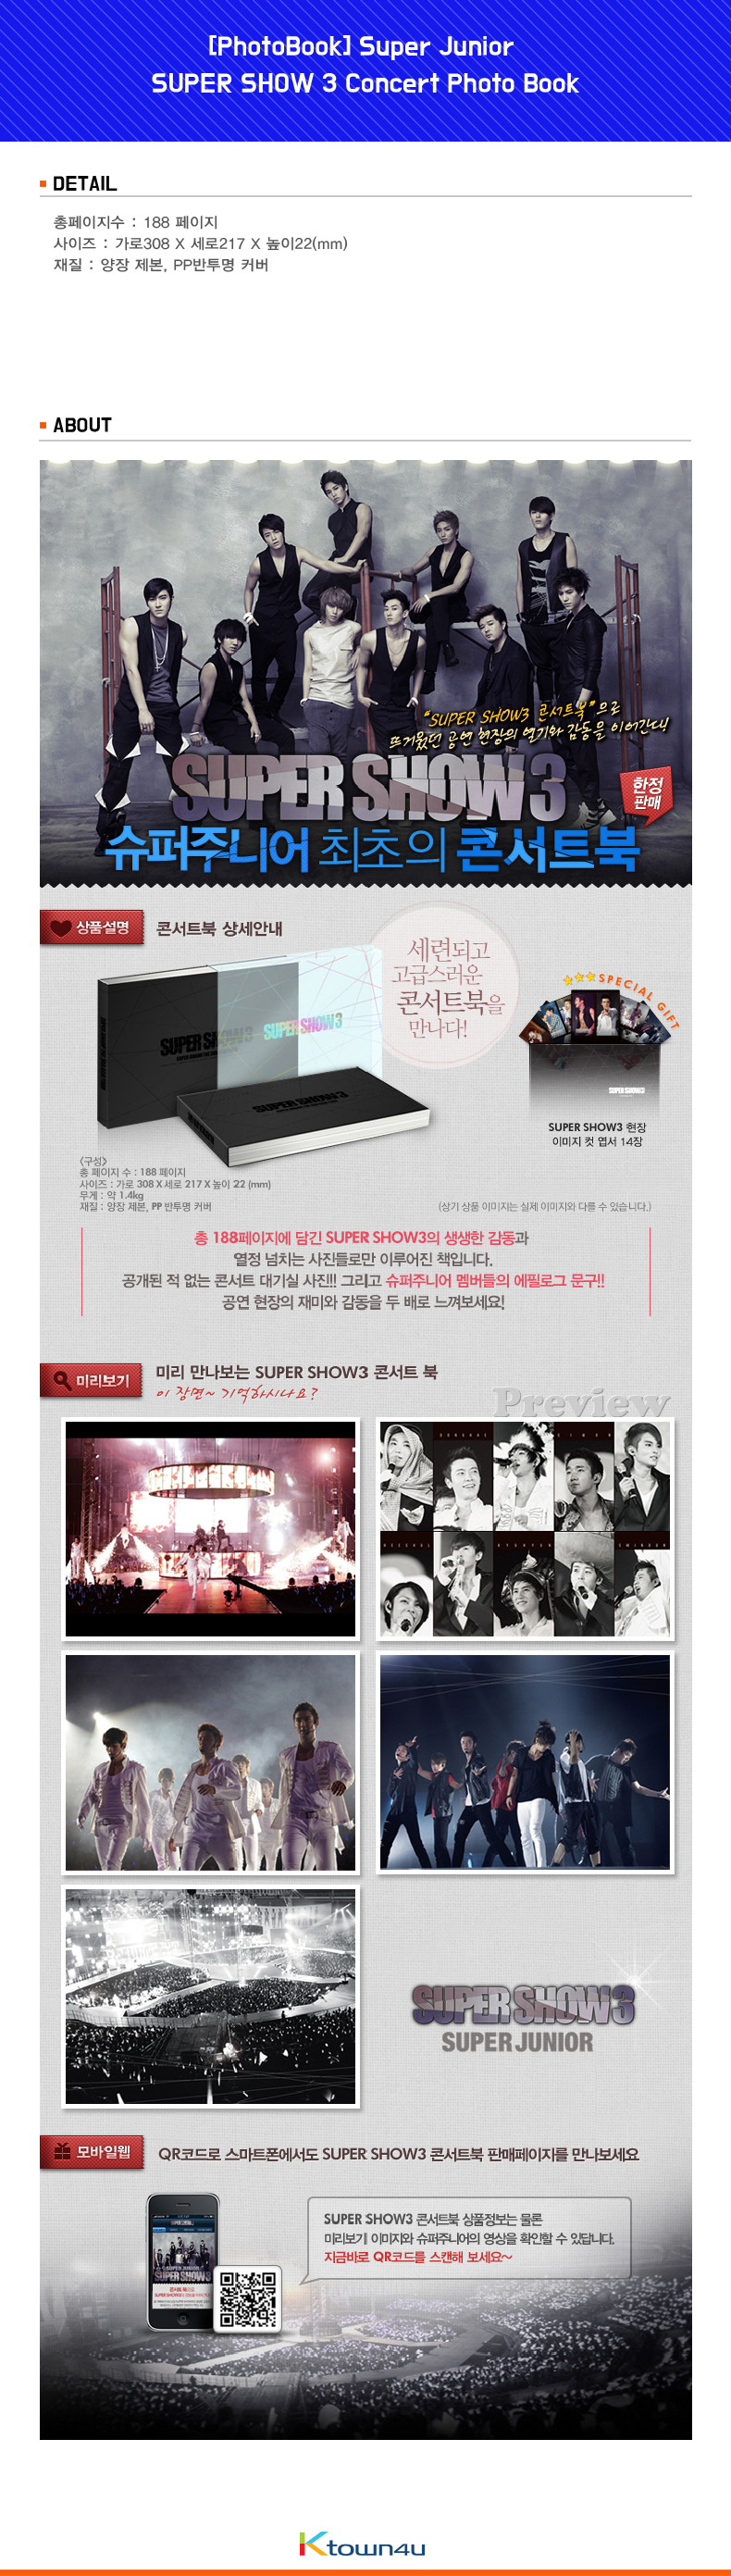 [PhotoBook] Super Junior SUPER SHOW 3 Concert Photo Book (188pages/14Postcards)